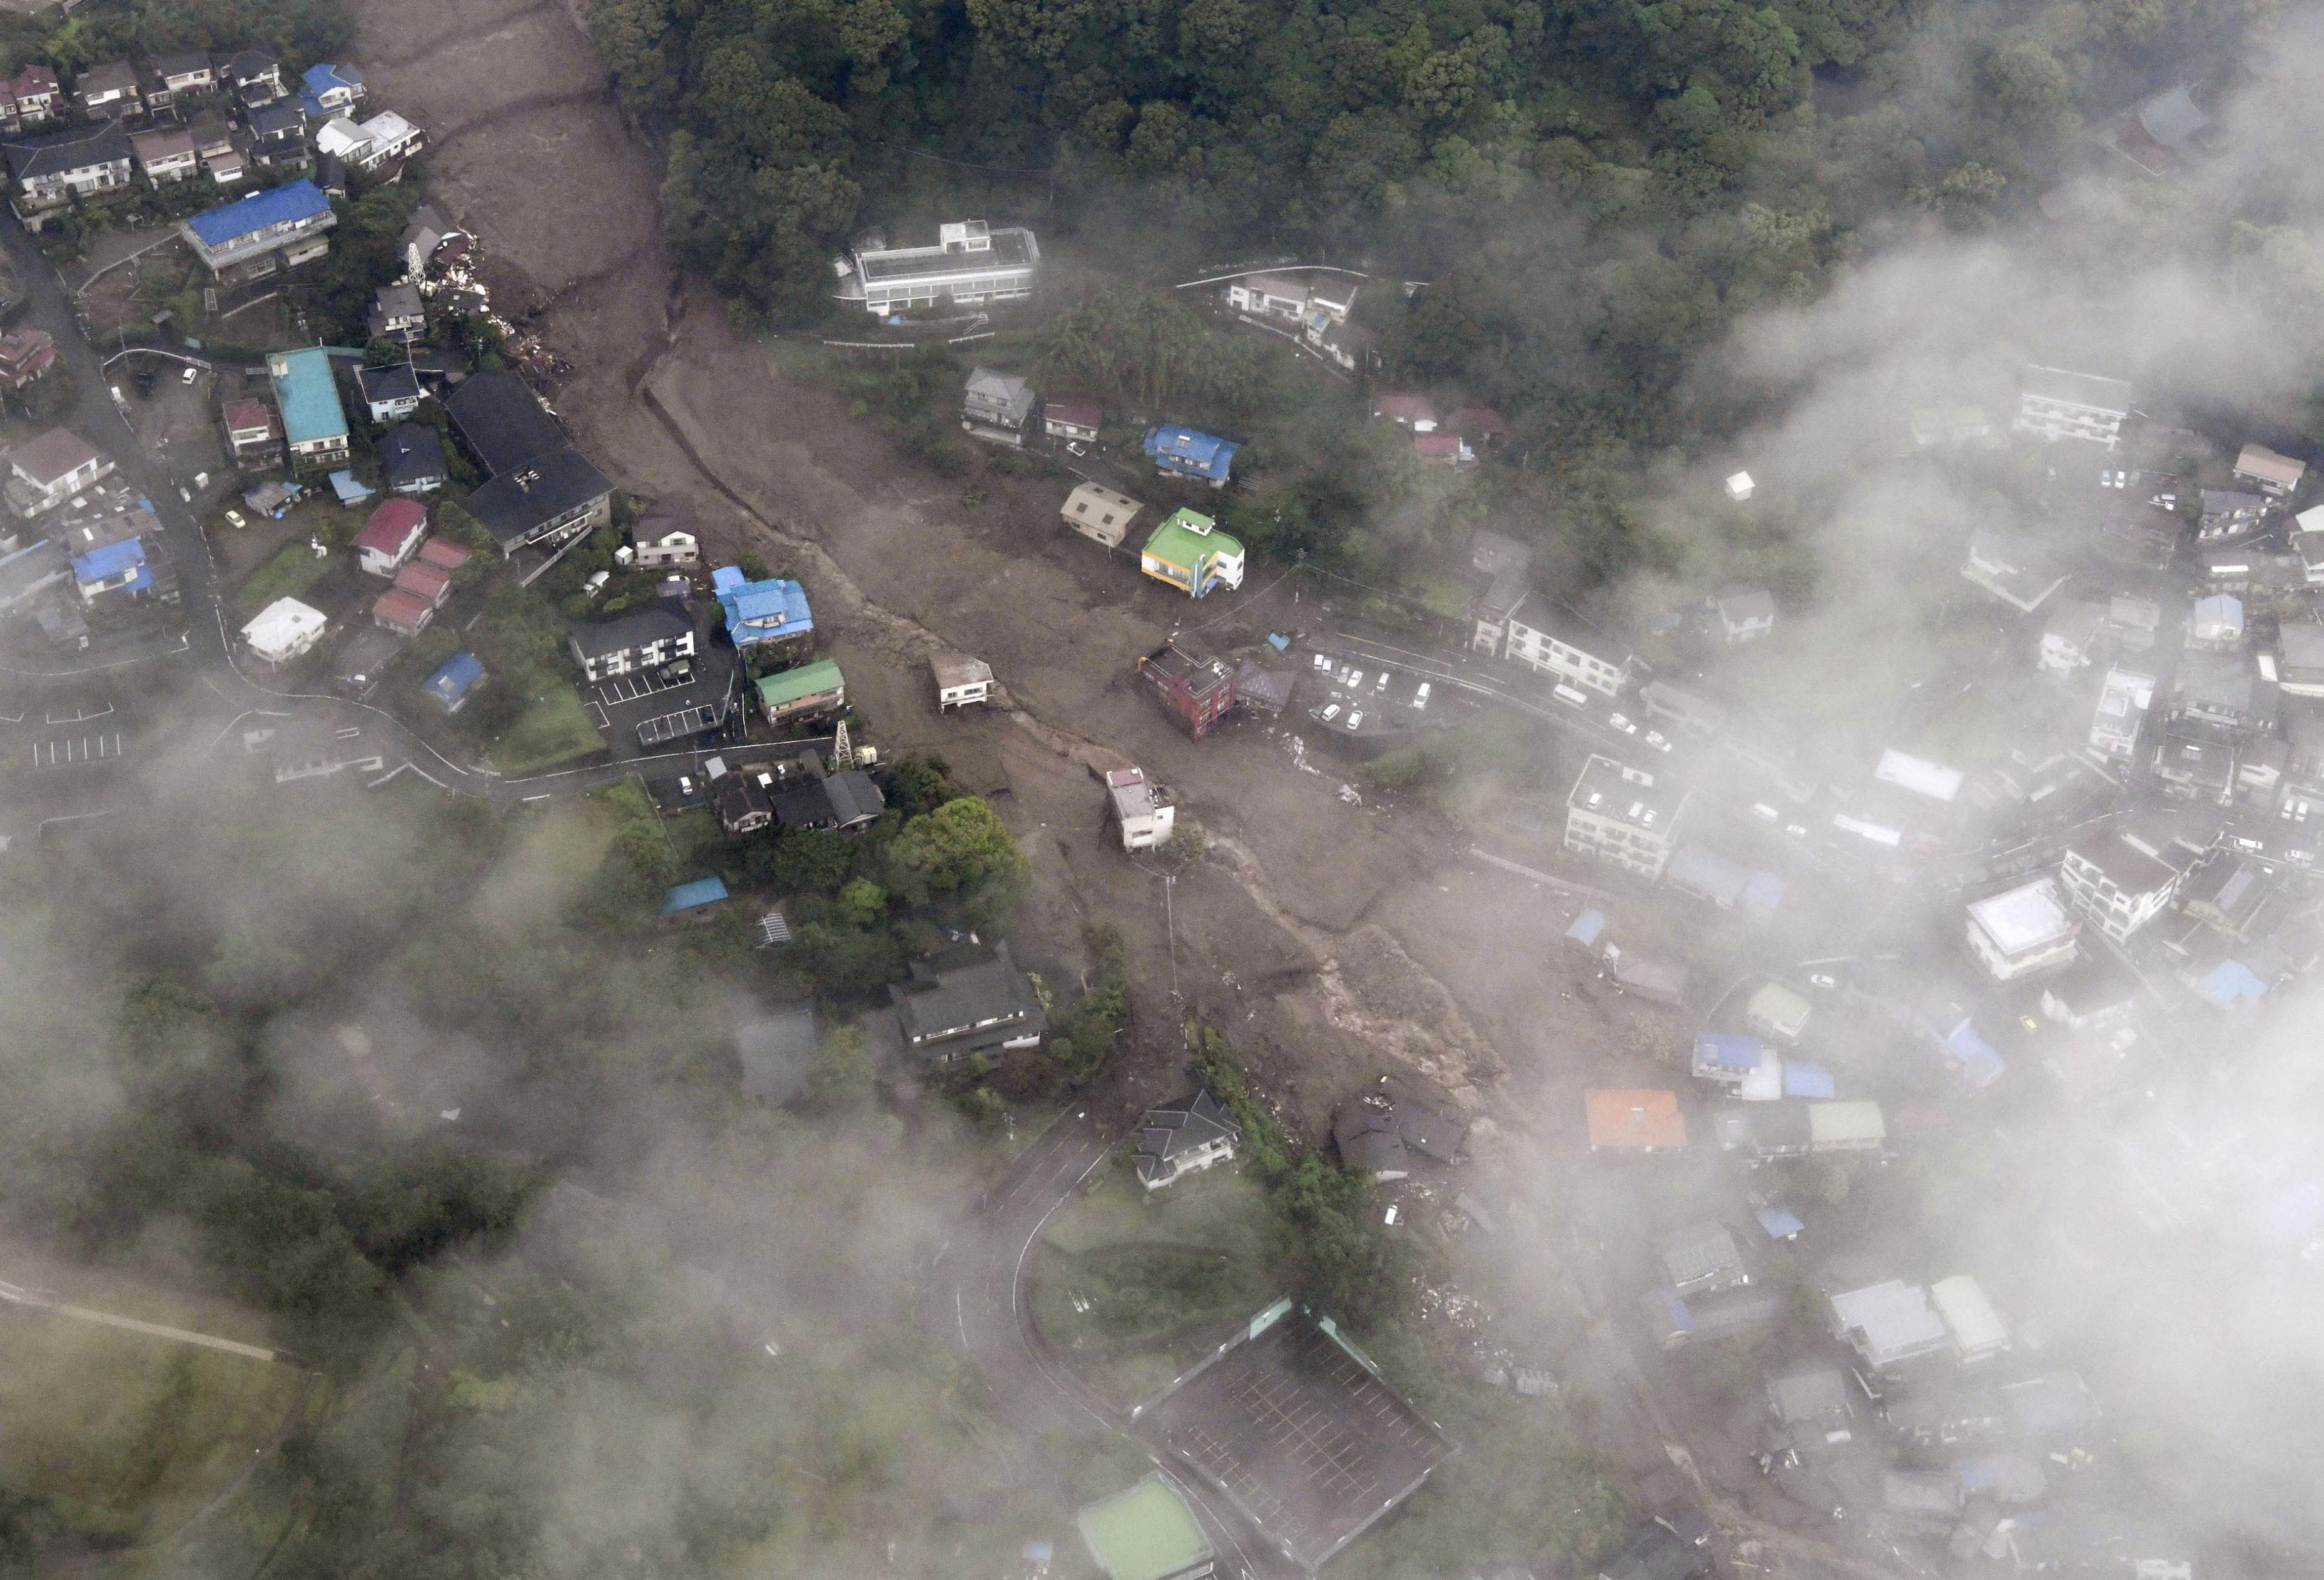 An aerial view shows the site of a mudslide caused by heavy rain at Izusan district in Atami, Japan July 3, 2021. Kyodo/via REUTERS